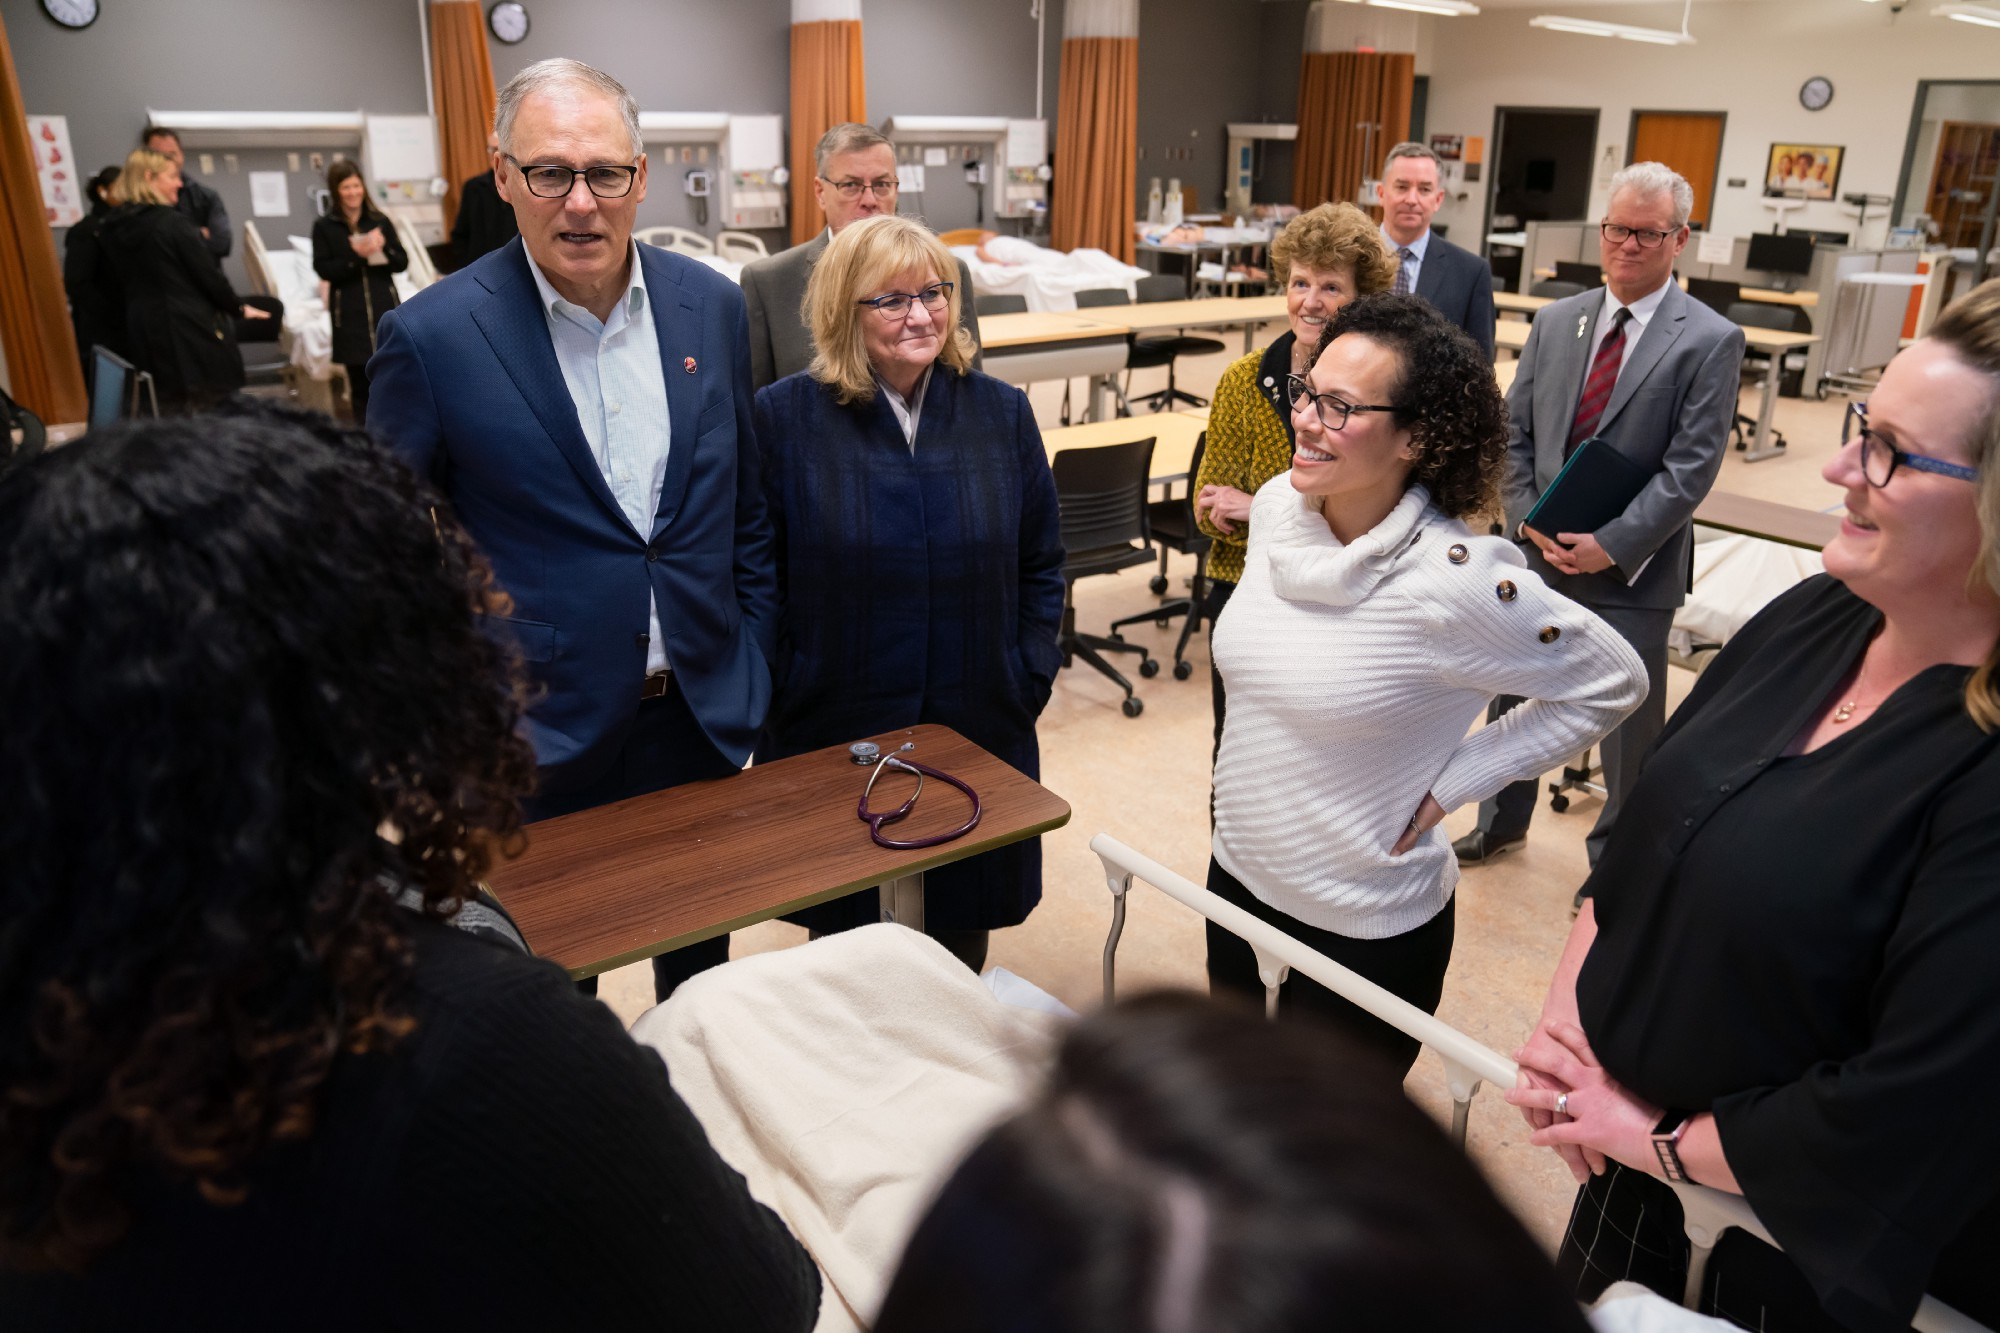 Gov. Jay Inslee and Trudi Inslee visit Pierce College, one of the institutions whose students may benefit from the expansion.